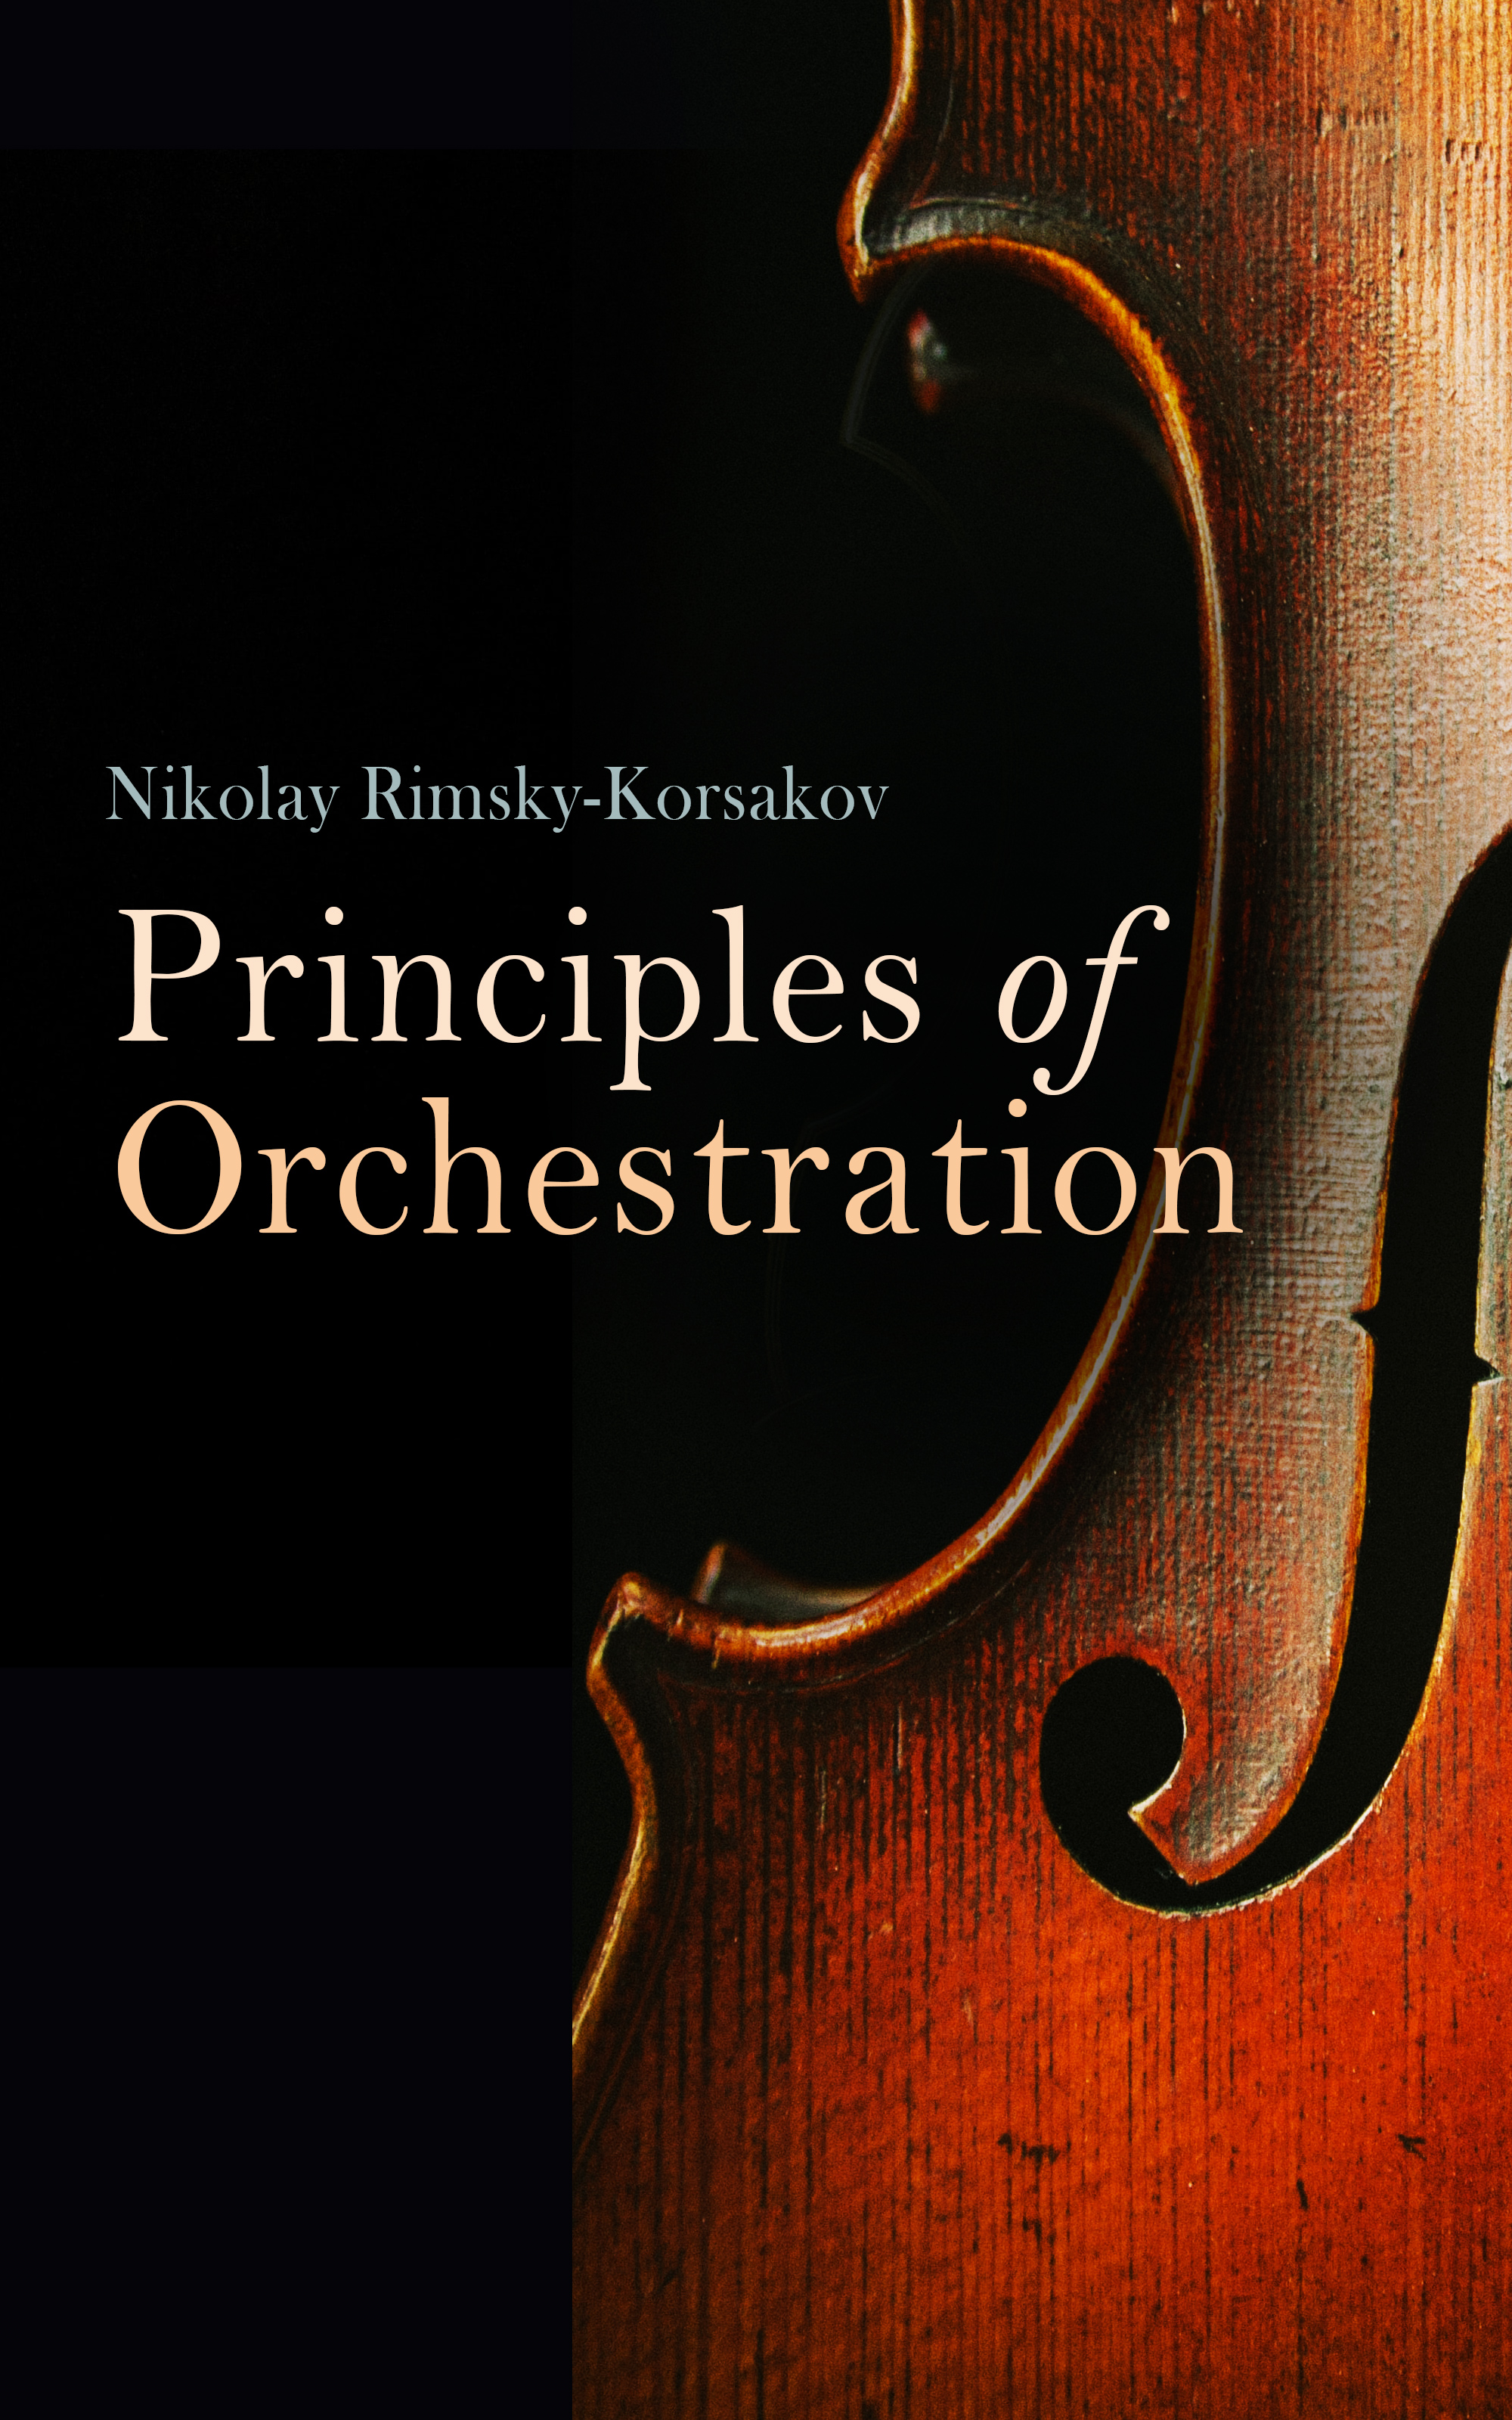 Rimsky-Korsakov Nikolay Principles of Orchestration, with Musical Examples Drawn from His Own Works